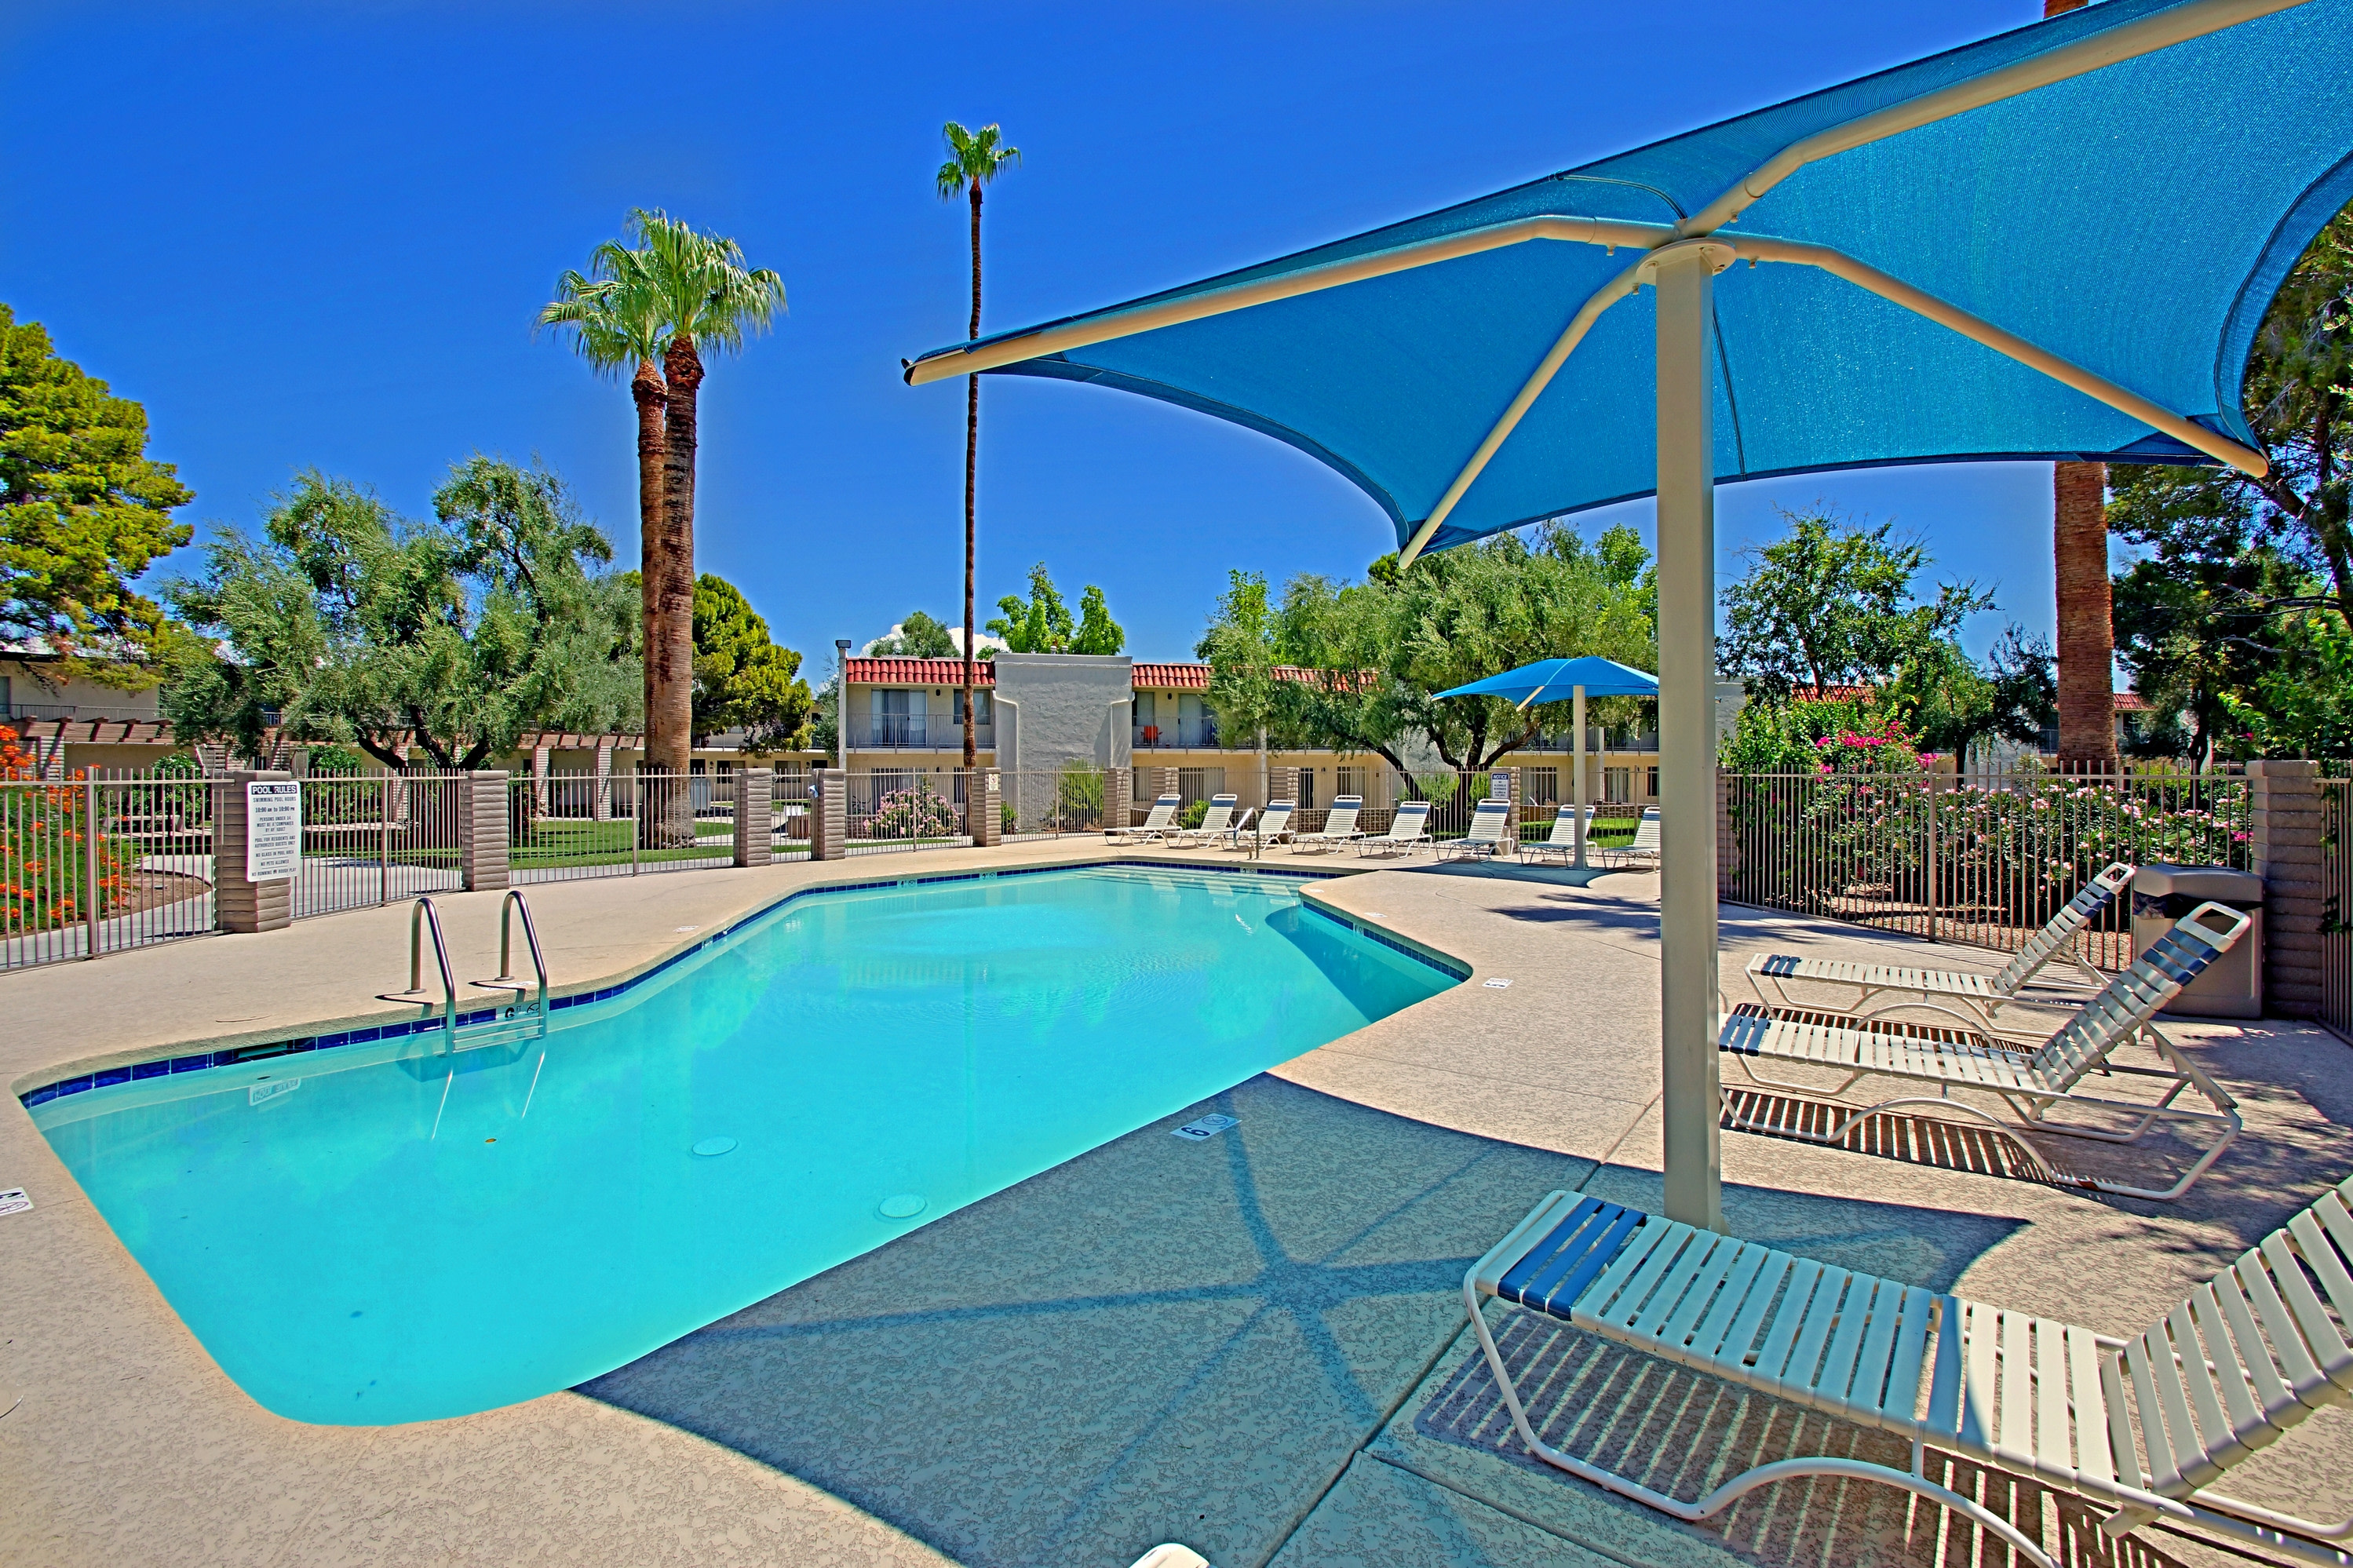 20 Best Apartments In Scottsdale AZ with pictures